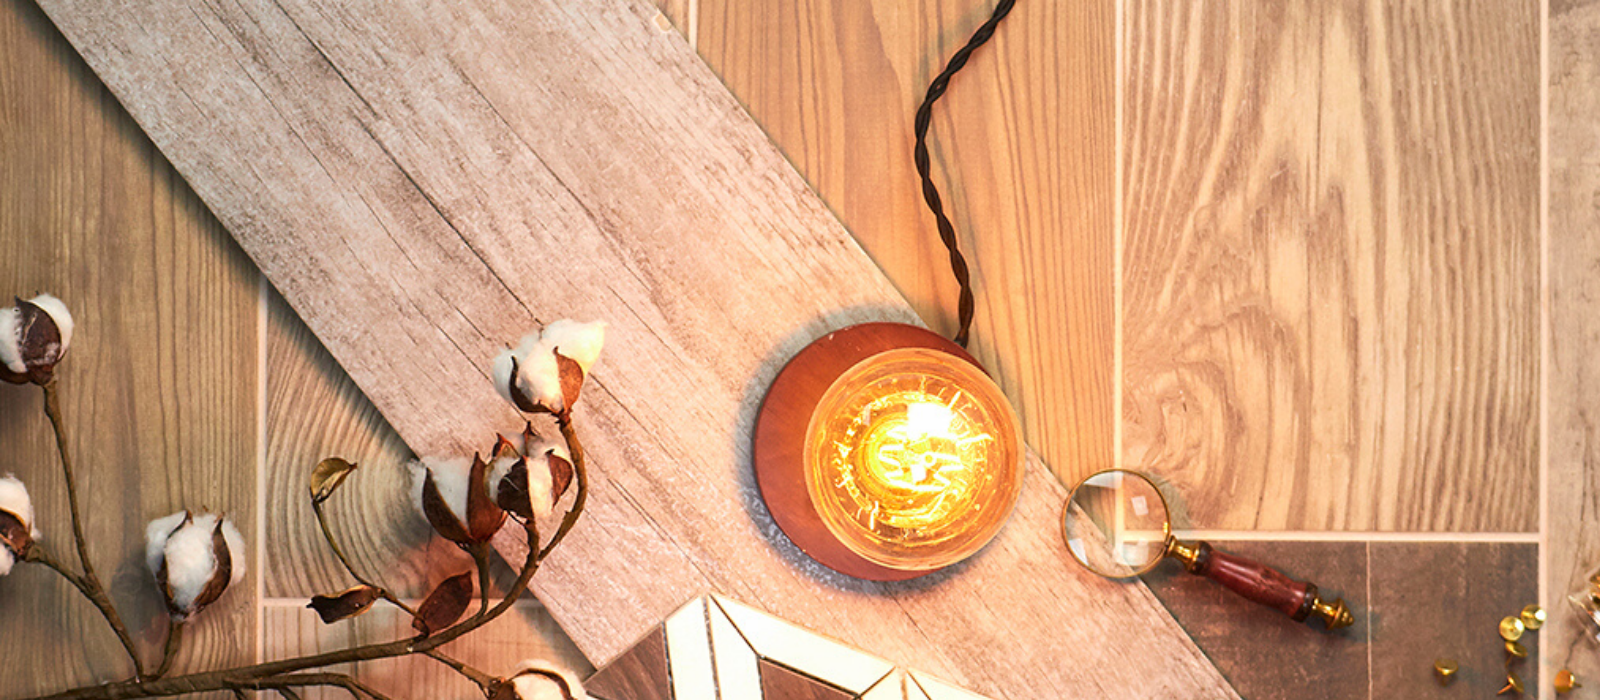 wood look tile with a warming light